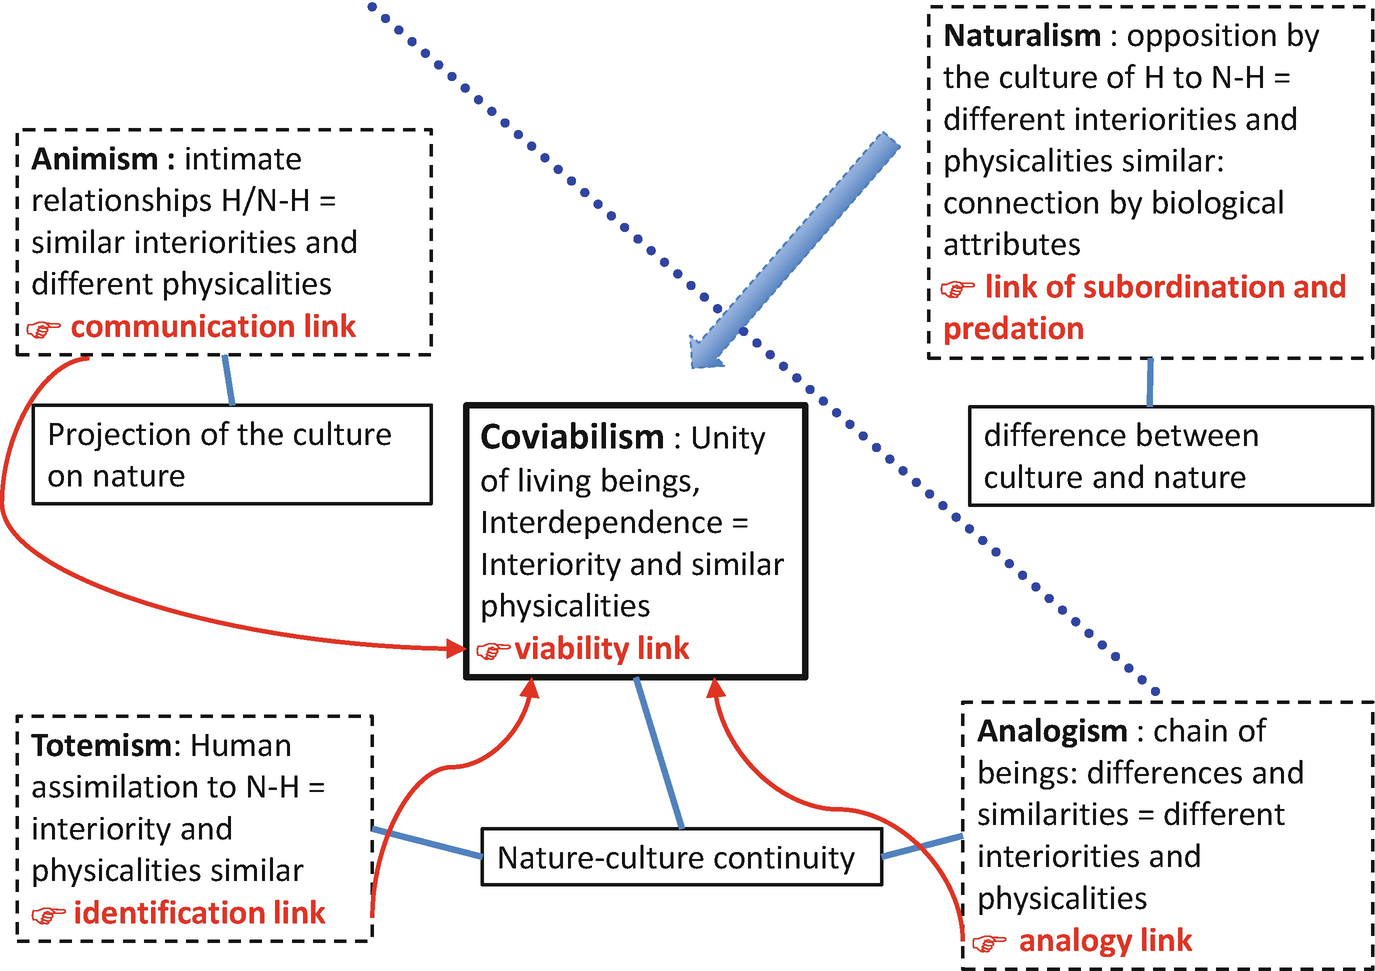 Coviability as a Scientific Paradigm for an Ecological